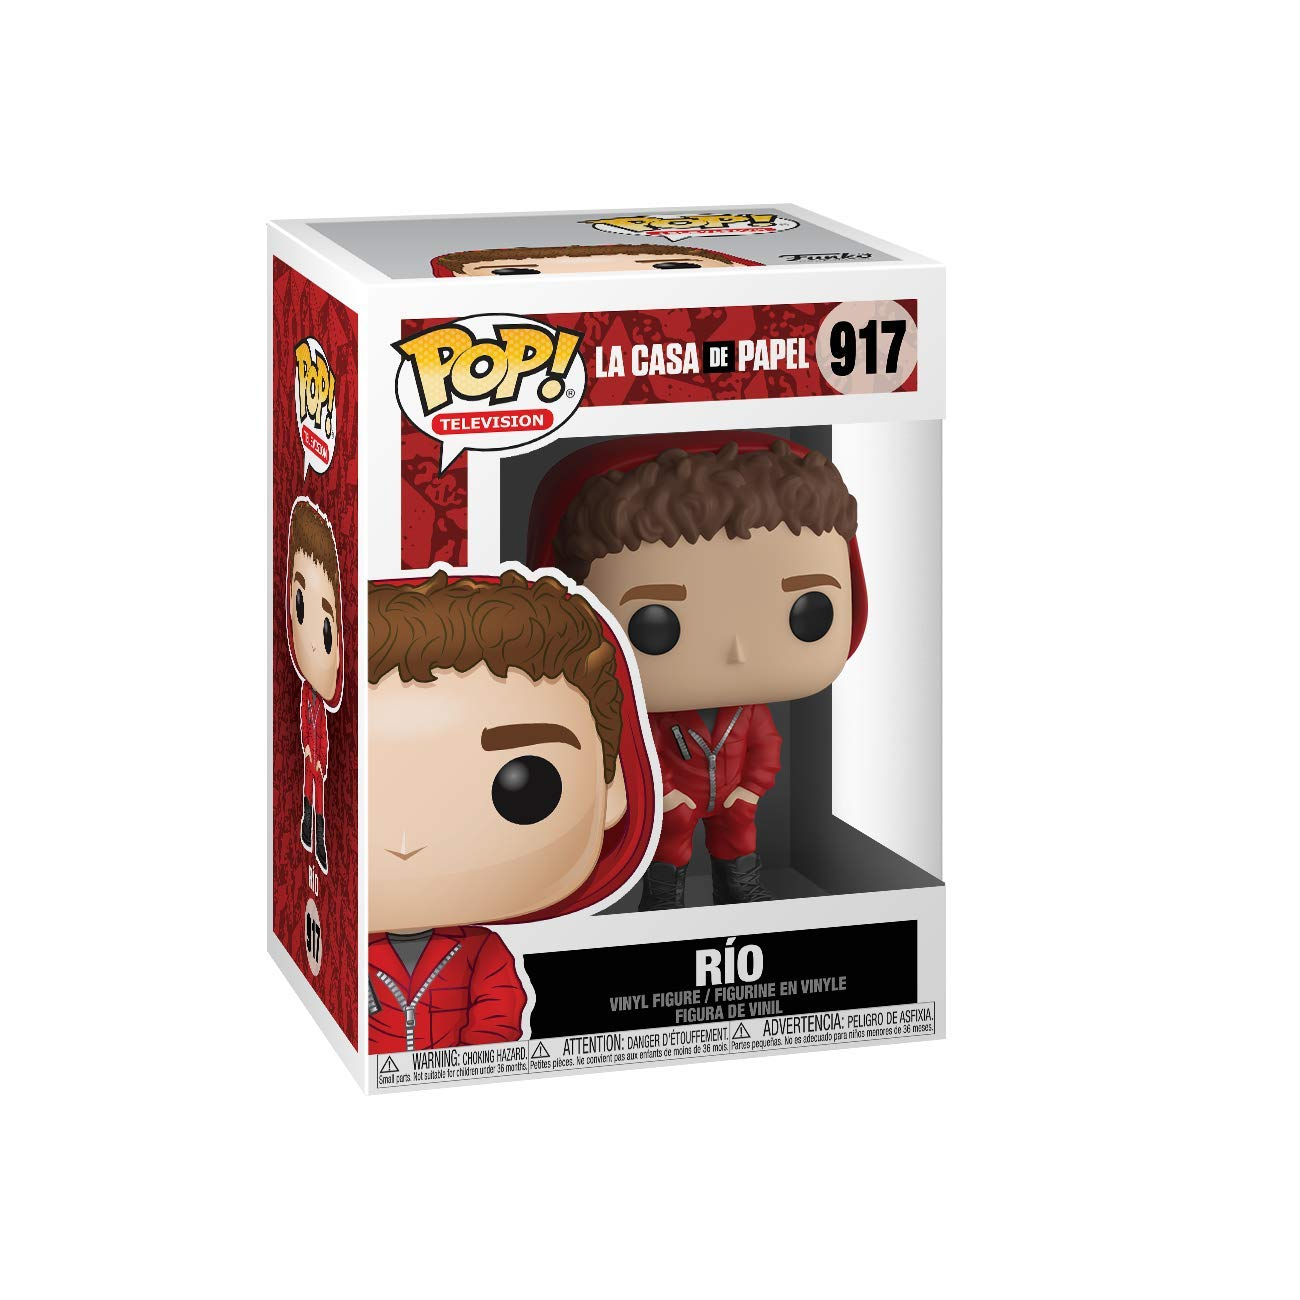 Funko Pop! TV: La Casa De Papel - Rio